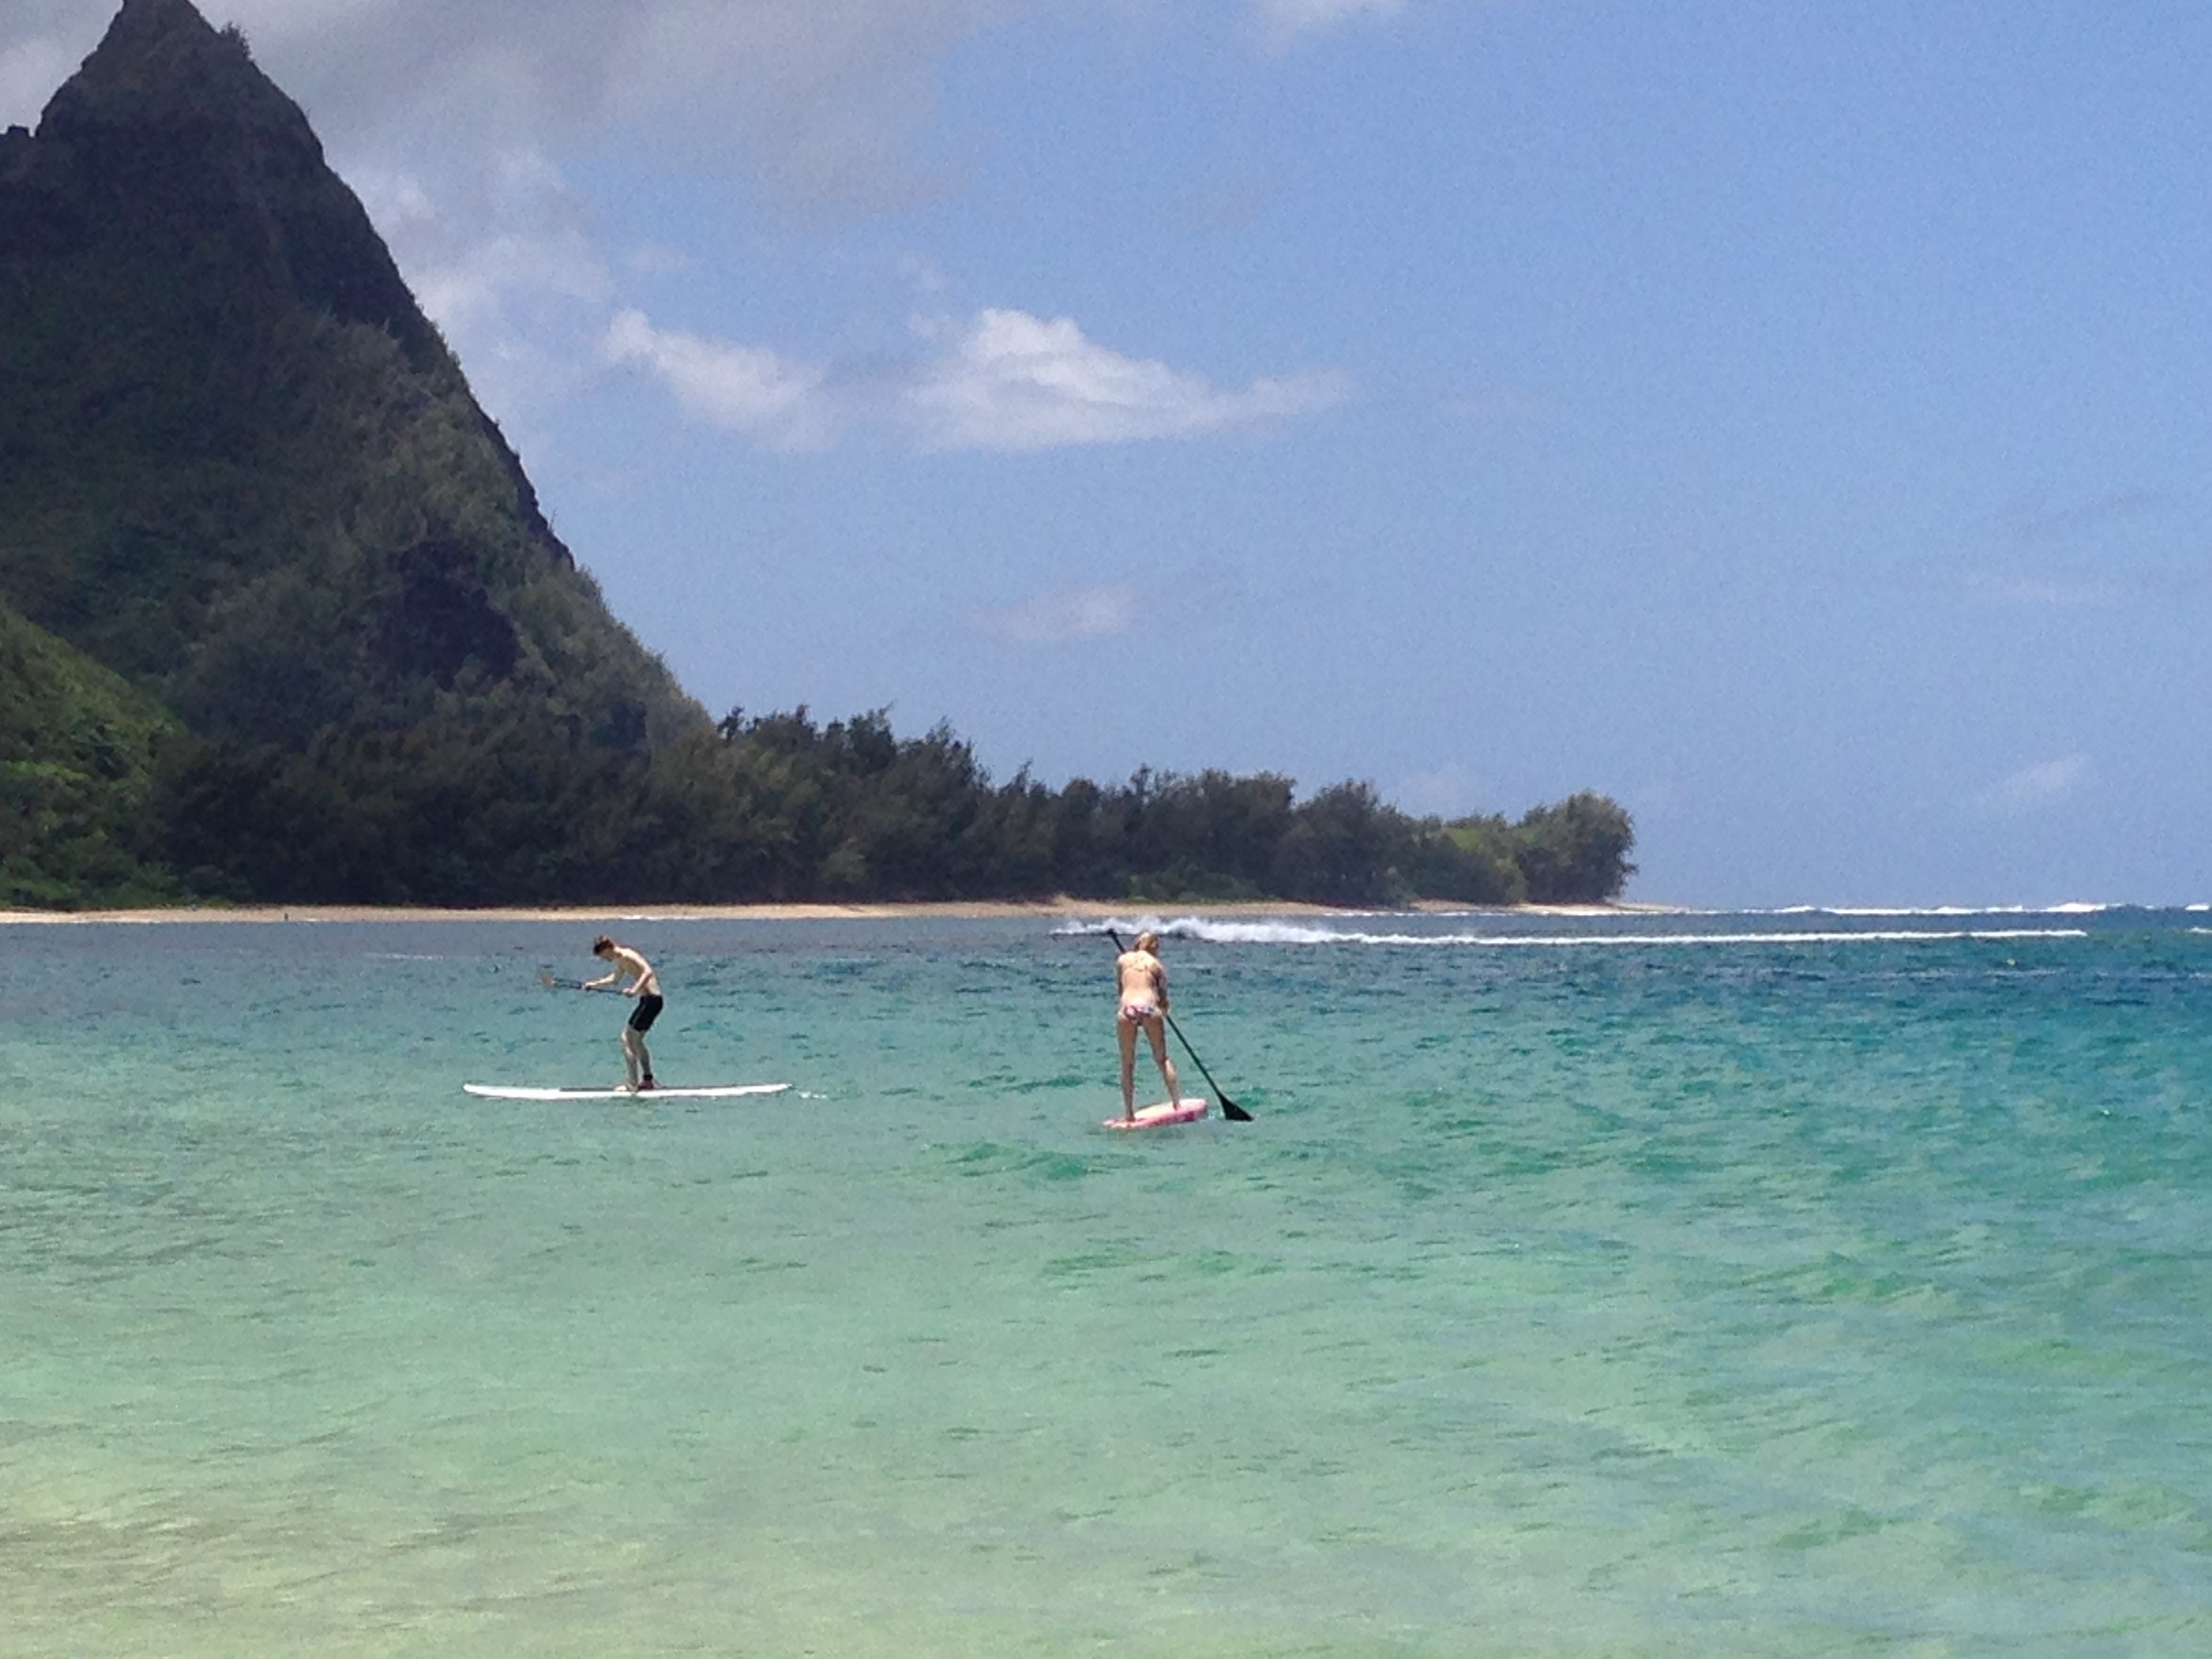 Paddle boarding was popular